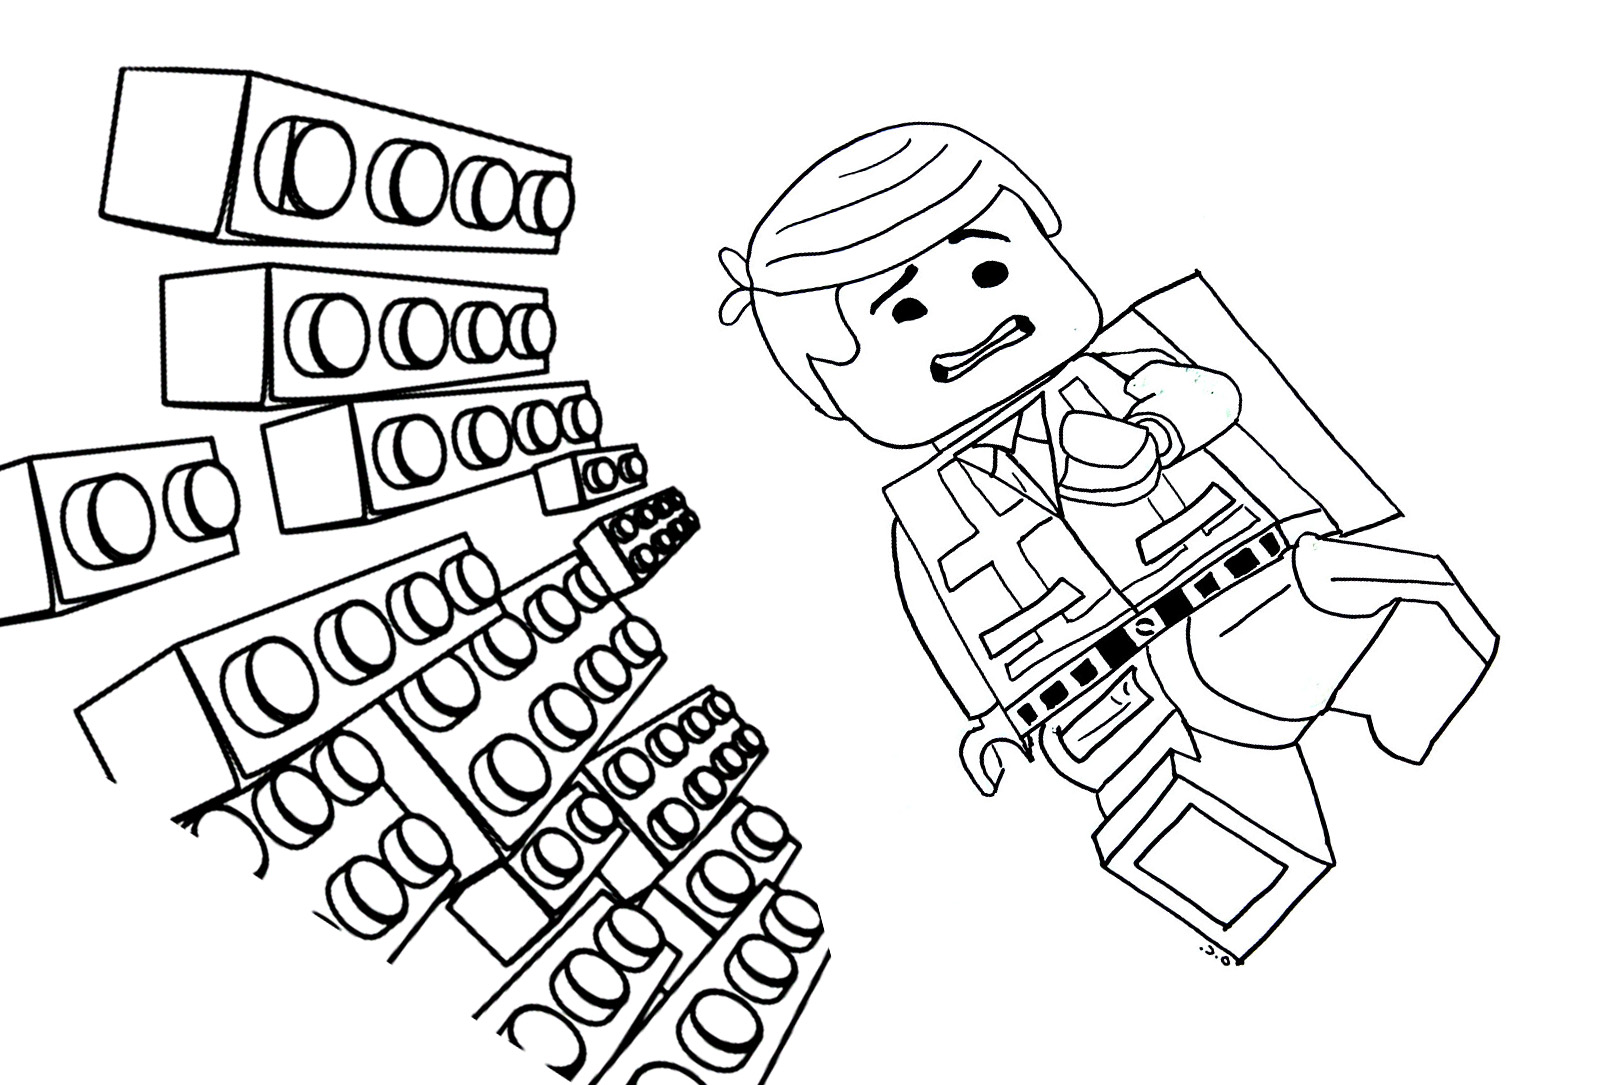 Funny Lego The Big Adventure Coloring Page